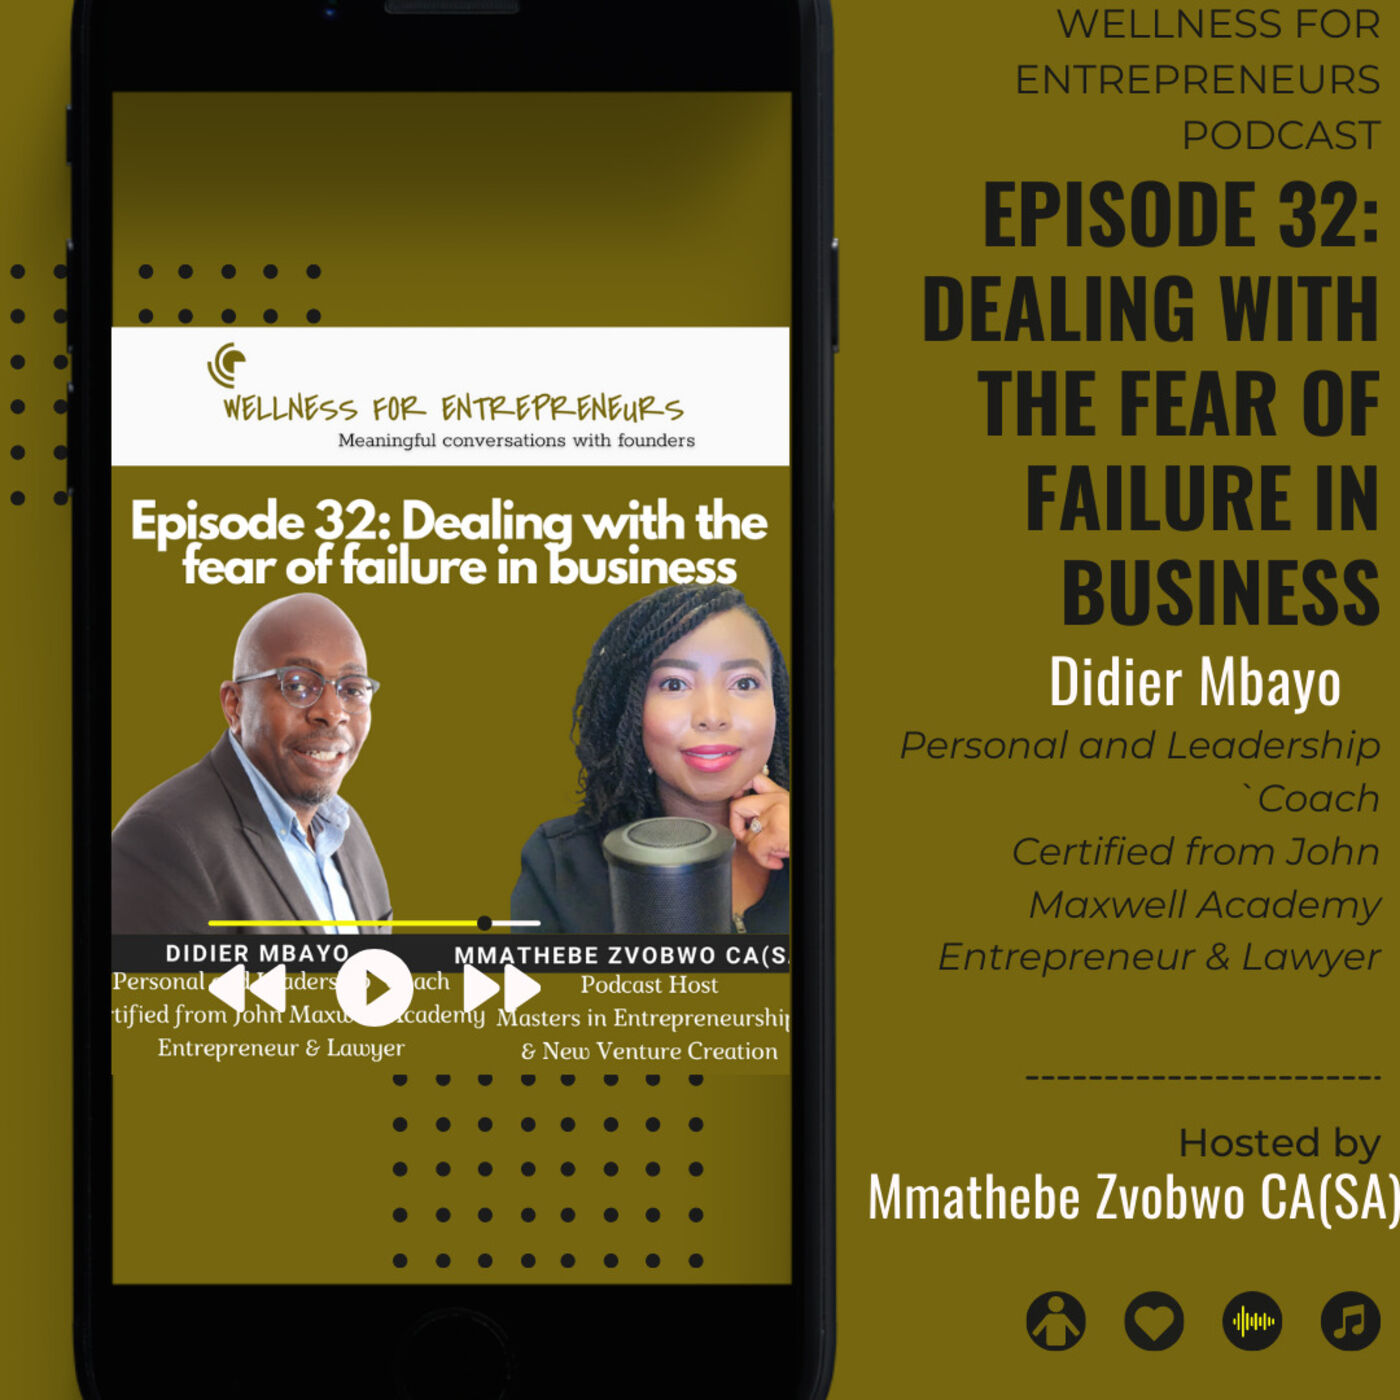 Episode 32: Dealing with the fear of failure in business, with Didier Mbayo